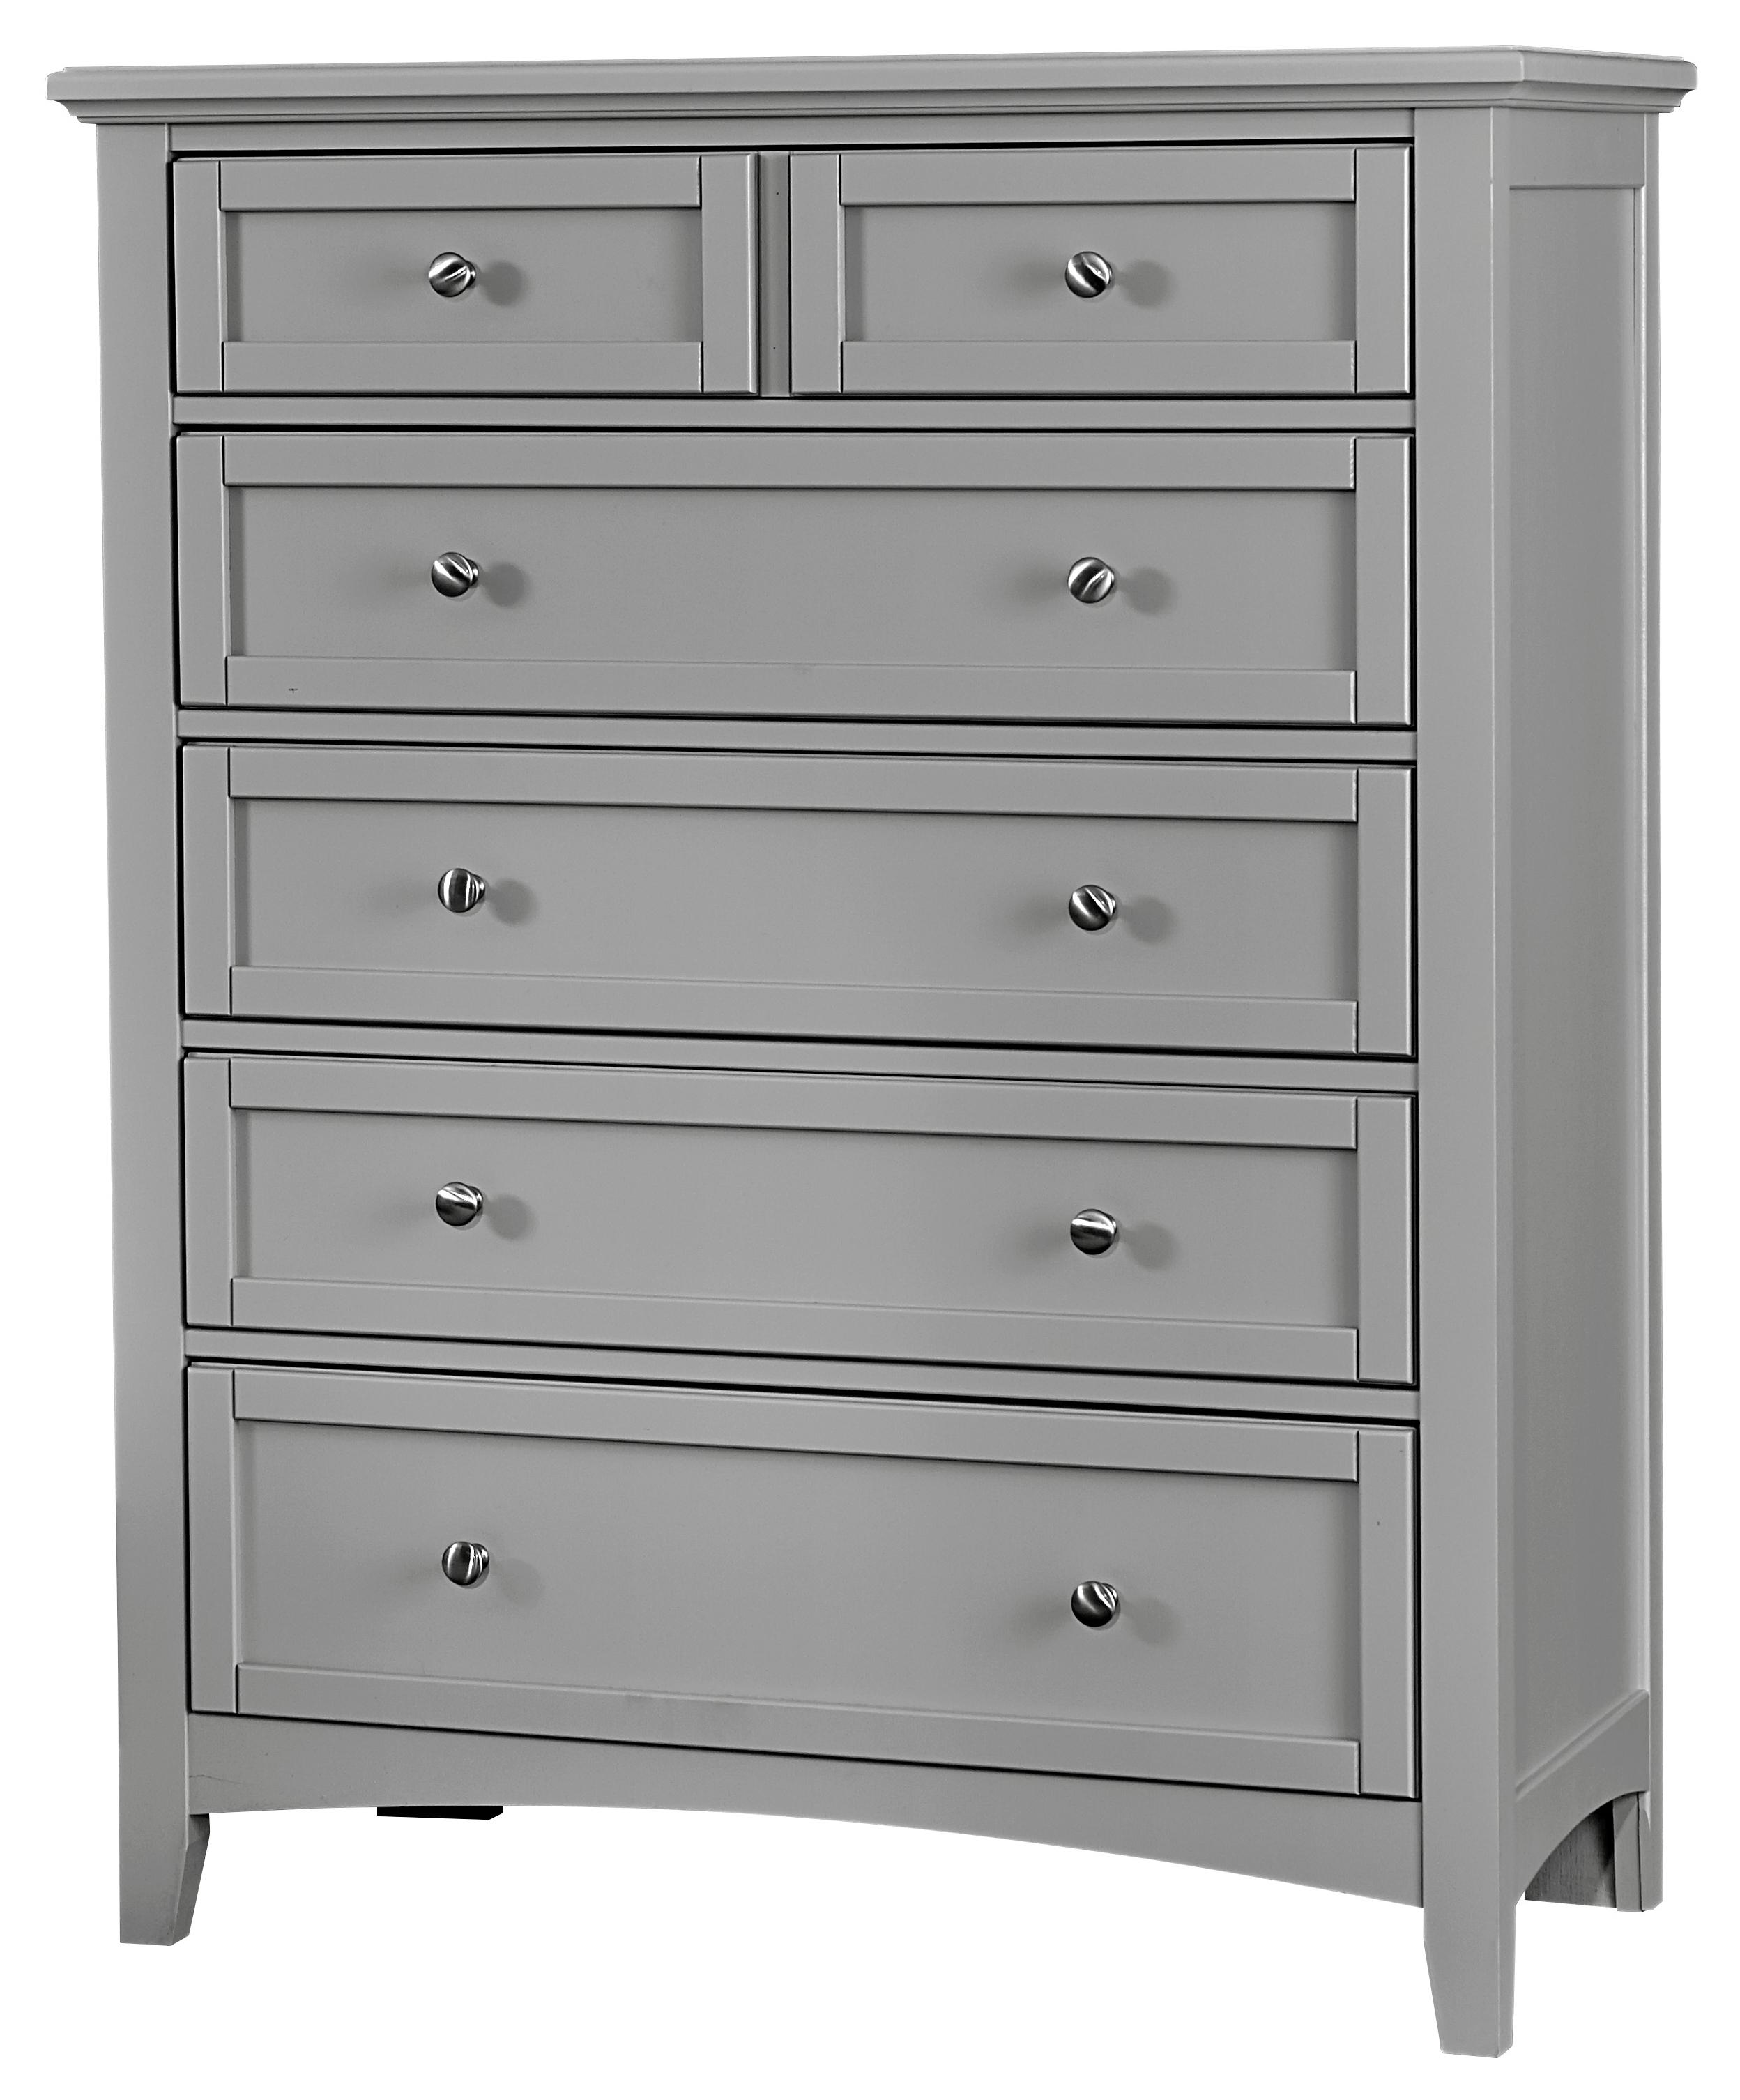 Vaughan Bassett Bonanza 5-Drawer Chest - Item Number: BB26-115